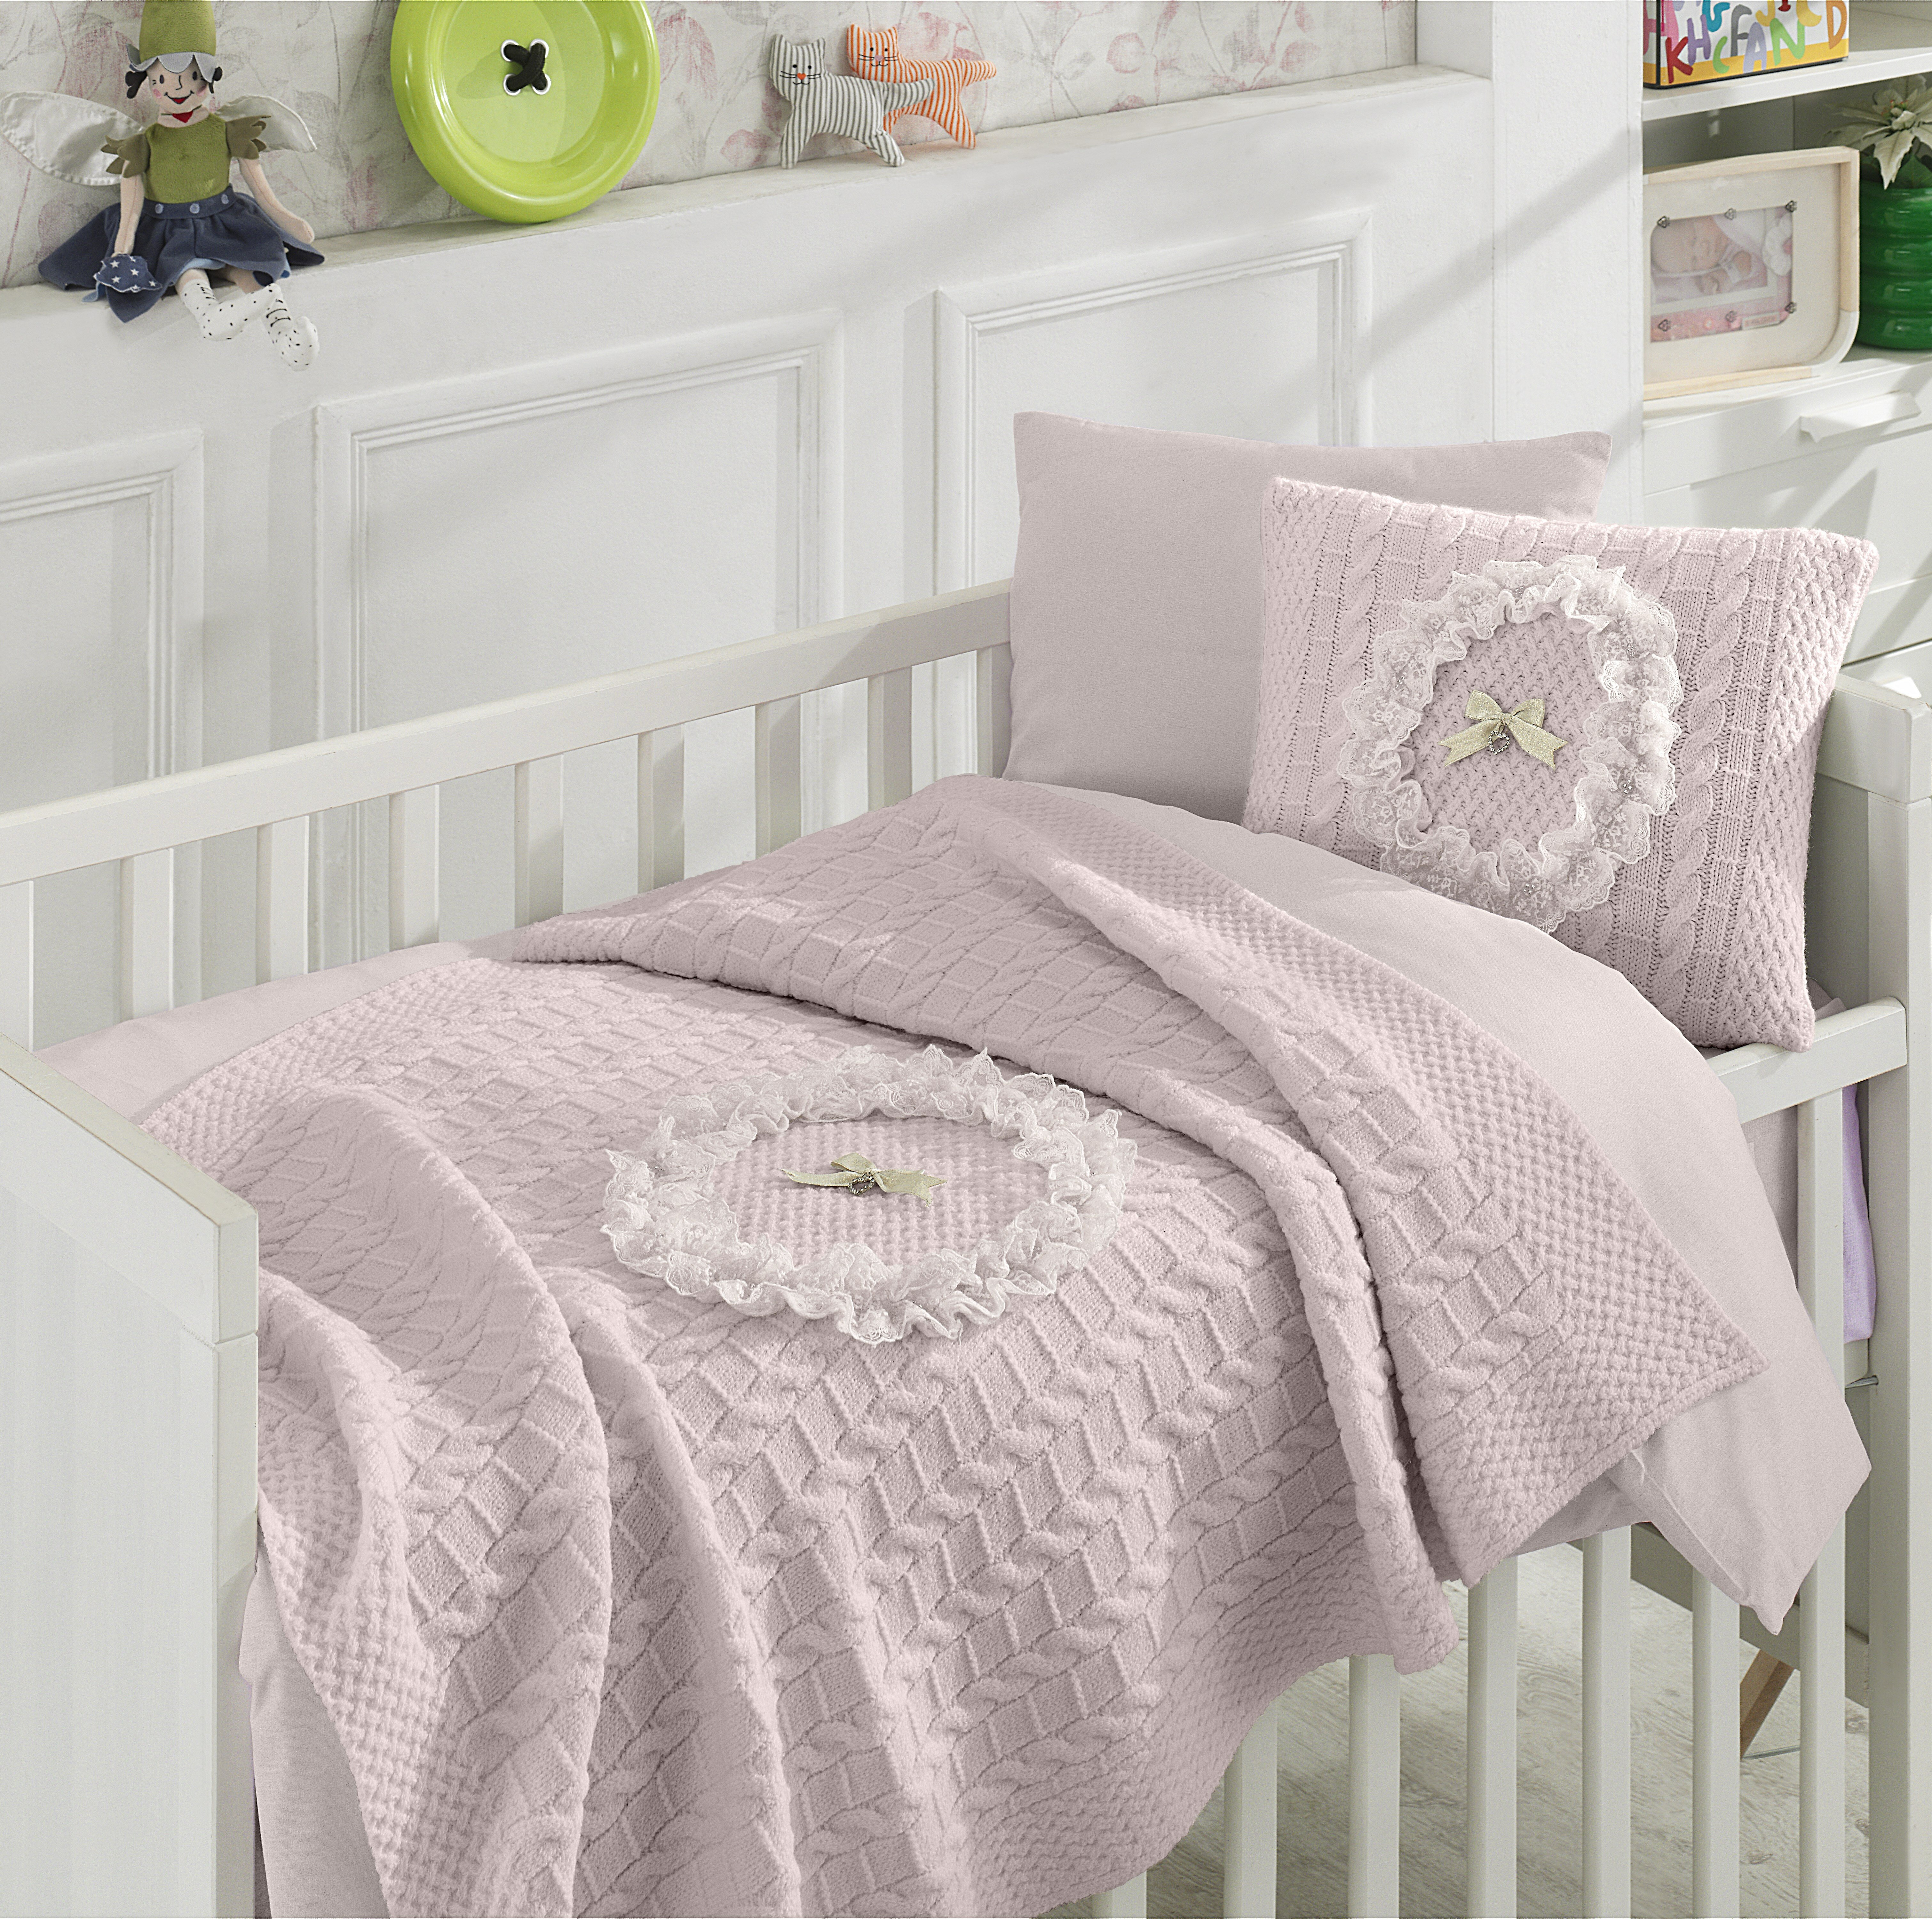 liz baby bedding attachment with petal cribs crib bumperless themed pink set floral skirt